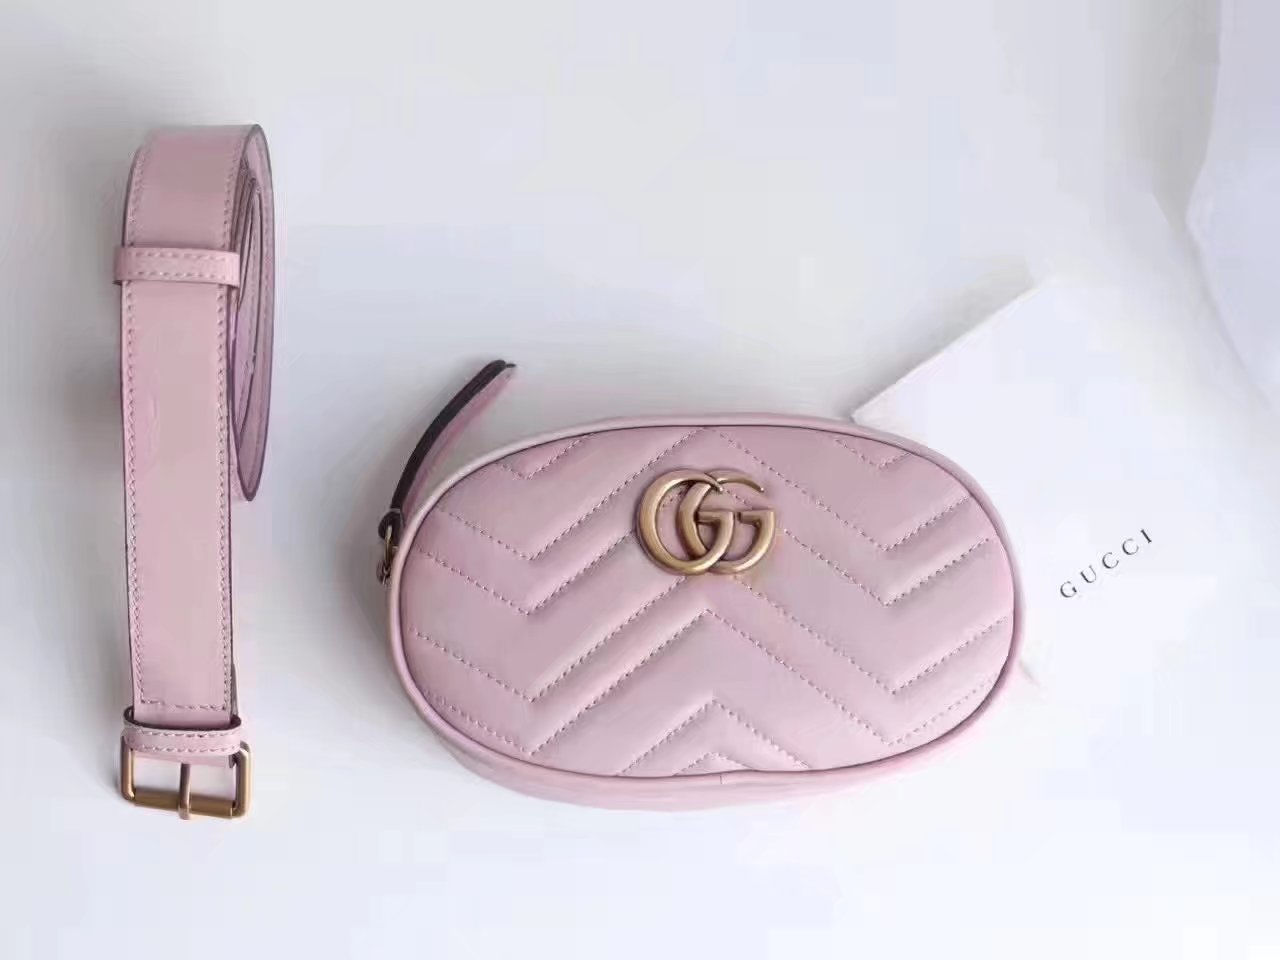 Gucci 476434 GG Marmont Matelassé Leather Belt Bag Pink